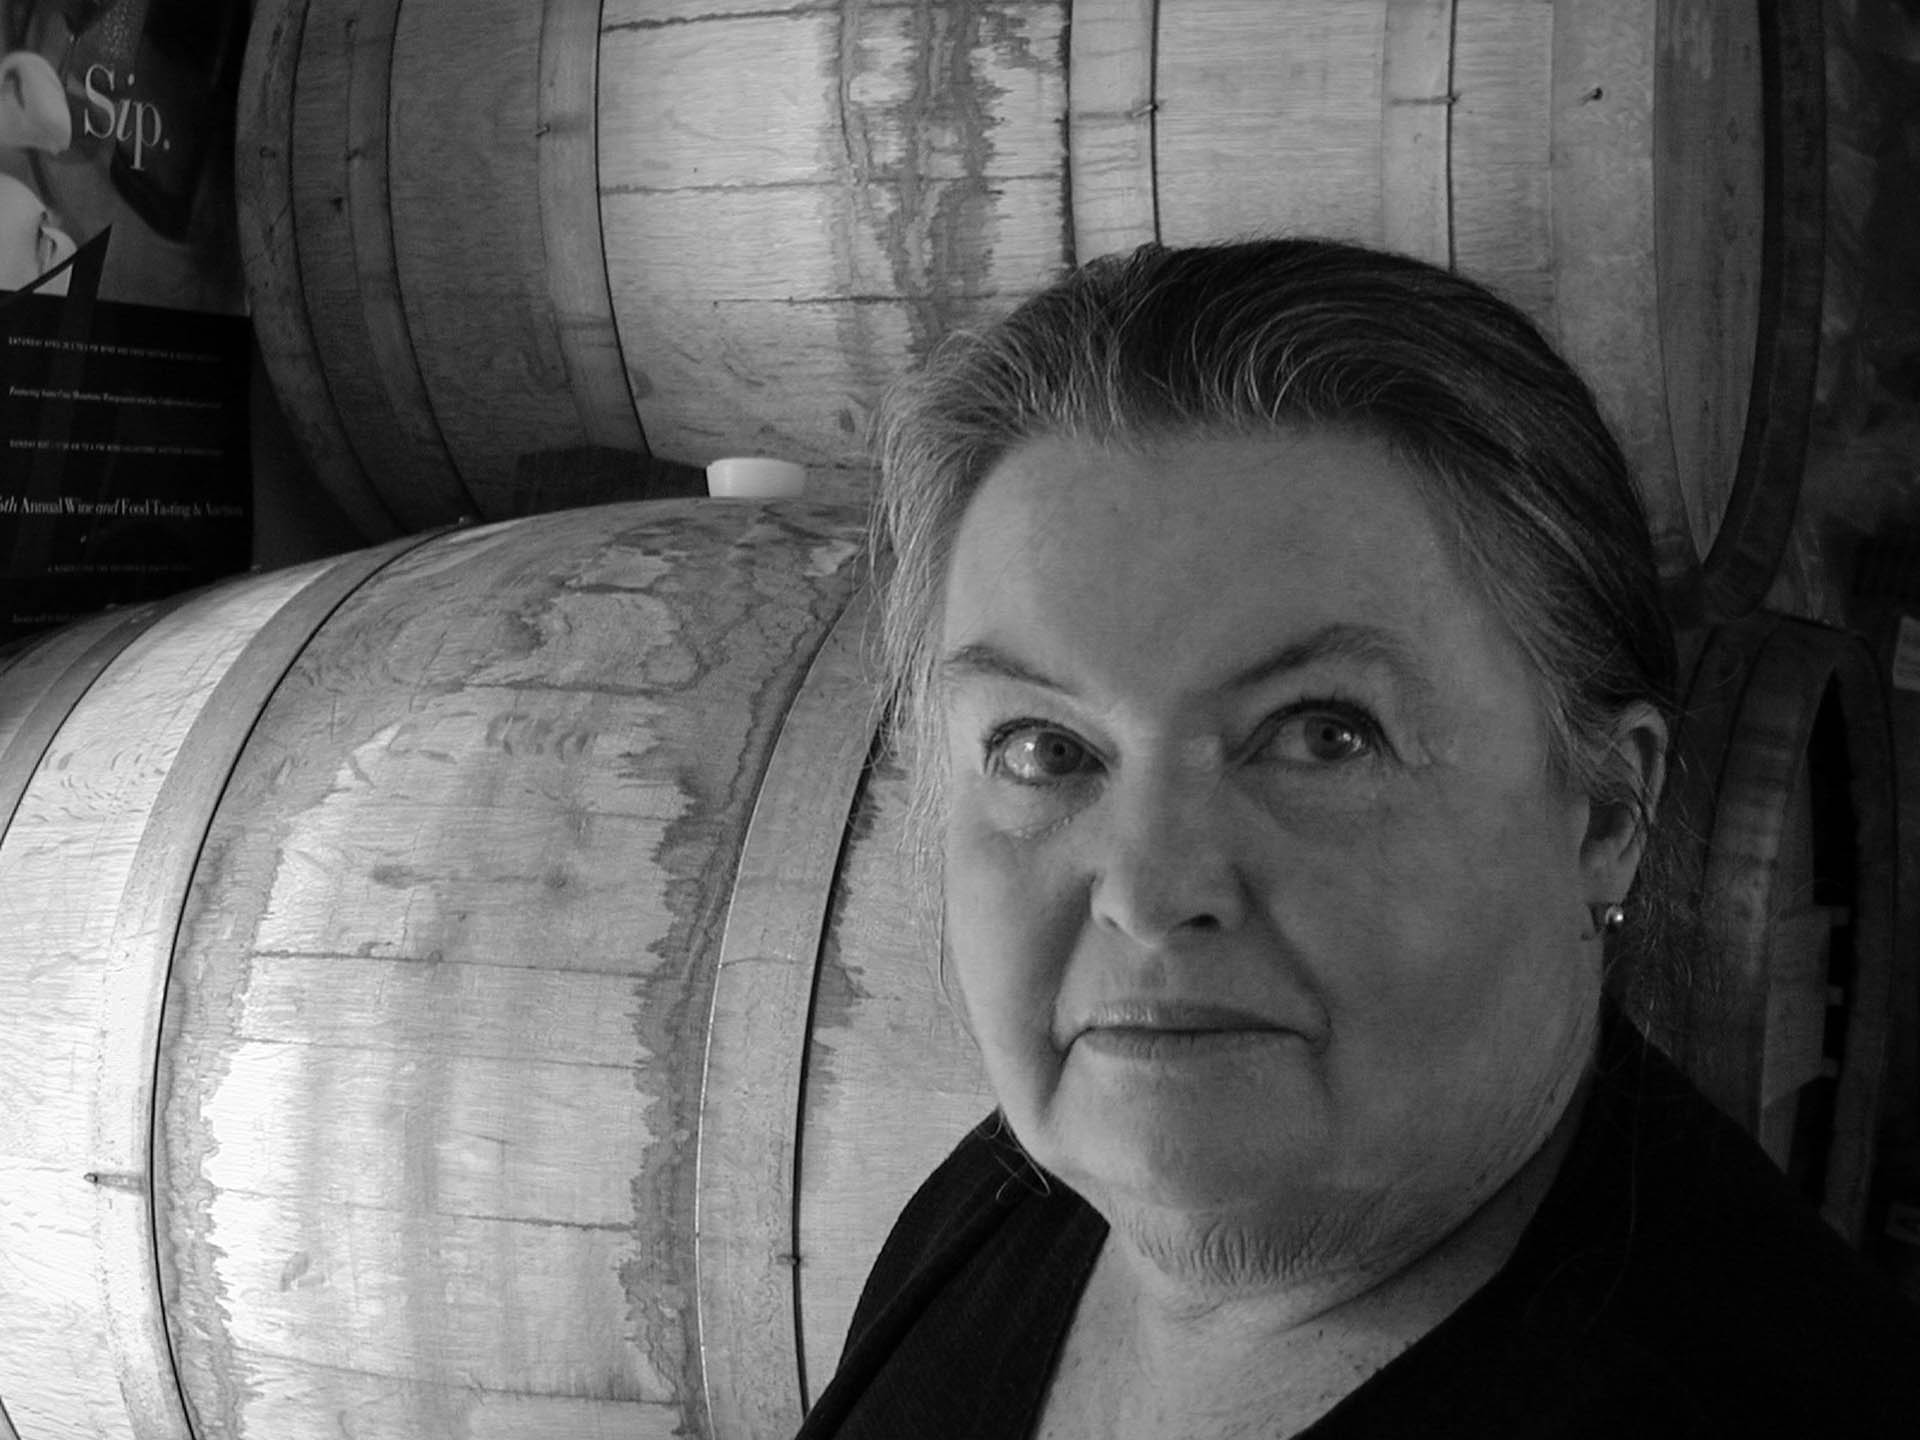 Kathryn and Wine Casks at Kathryn Kennedy Winery